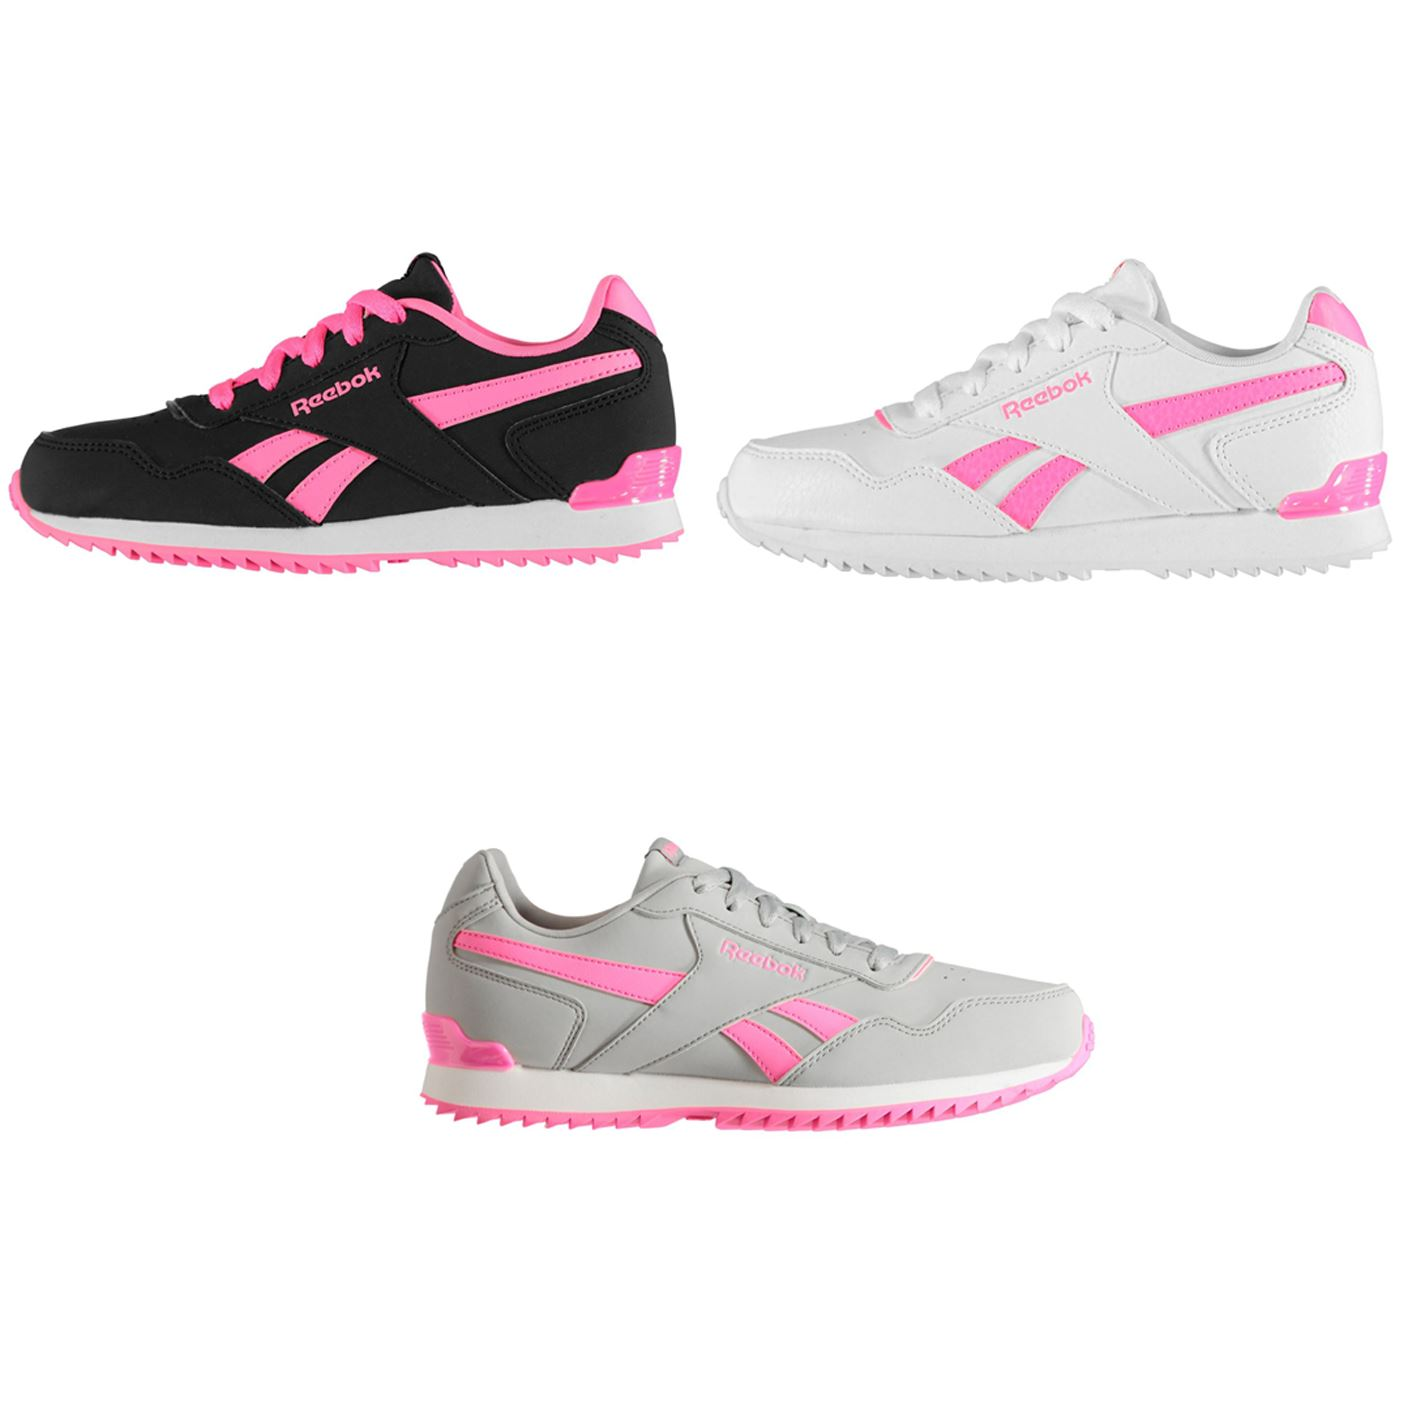 Details about Reebok Glide Rip Clip Junior Girls Trainers Shoes Footwear